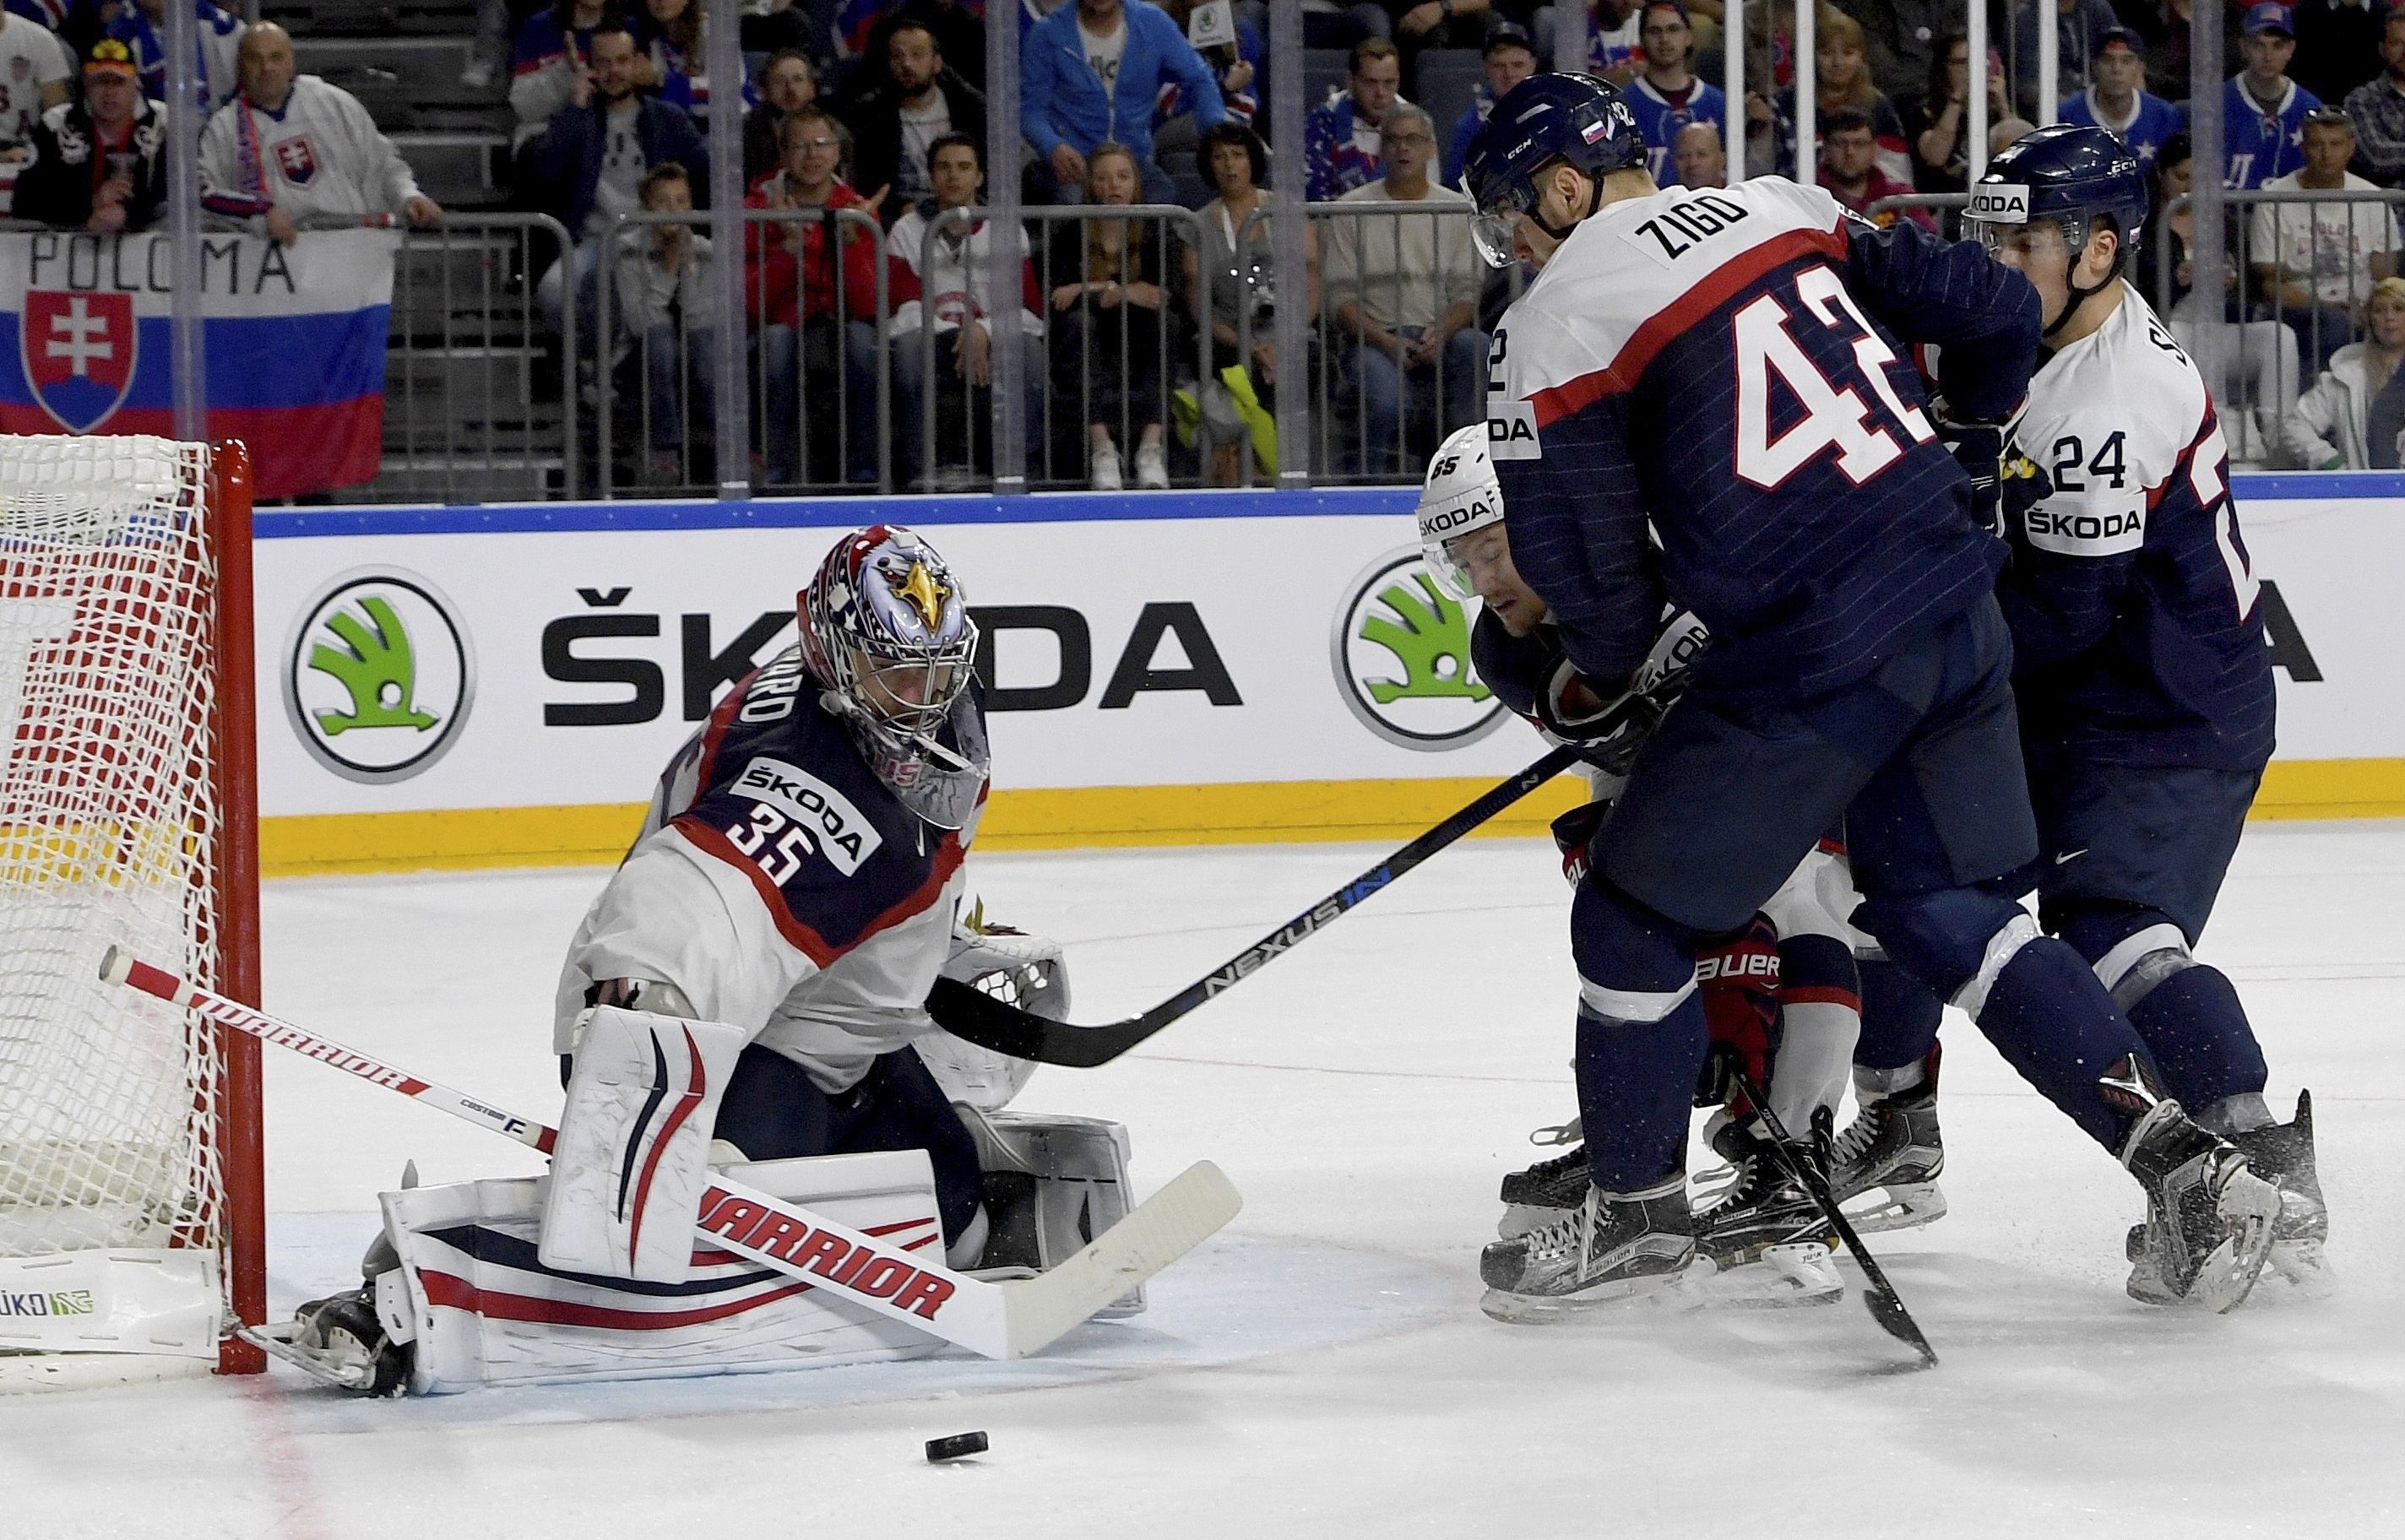 US goalie Jimmy Howard, left,  blocks a shot by Slovakia's Tomas Zigo, second right, during a group A match between Slovakia and USA at the 2017 Hockey World Championships in the Lanxess Arena in  Cologne, Germany, Sunday, May 14, 2017.  (Monika Skolimowska/dpa via AP)